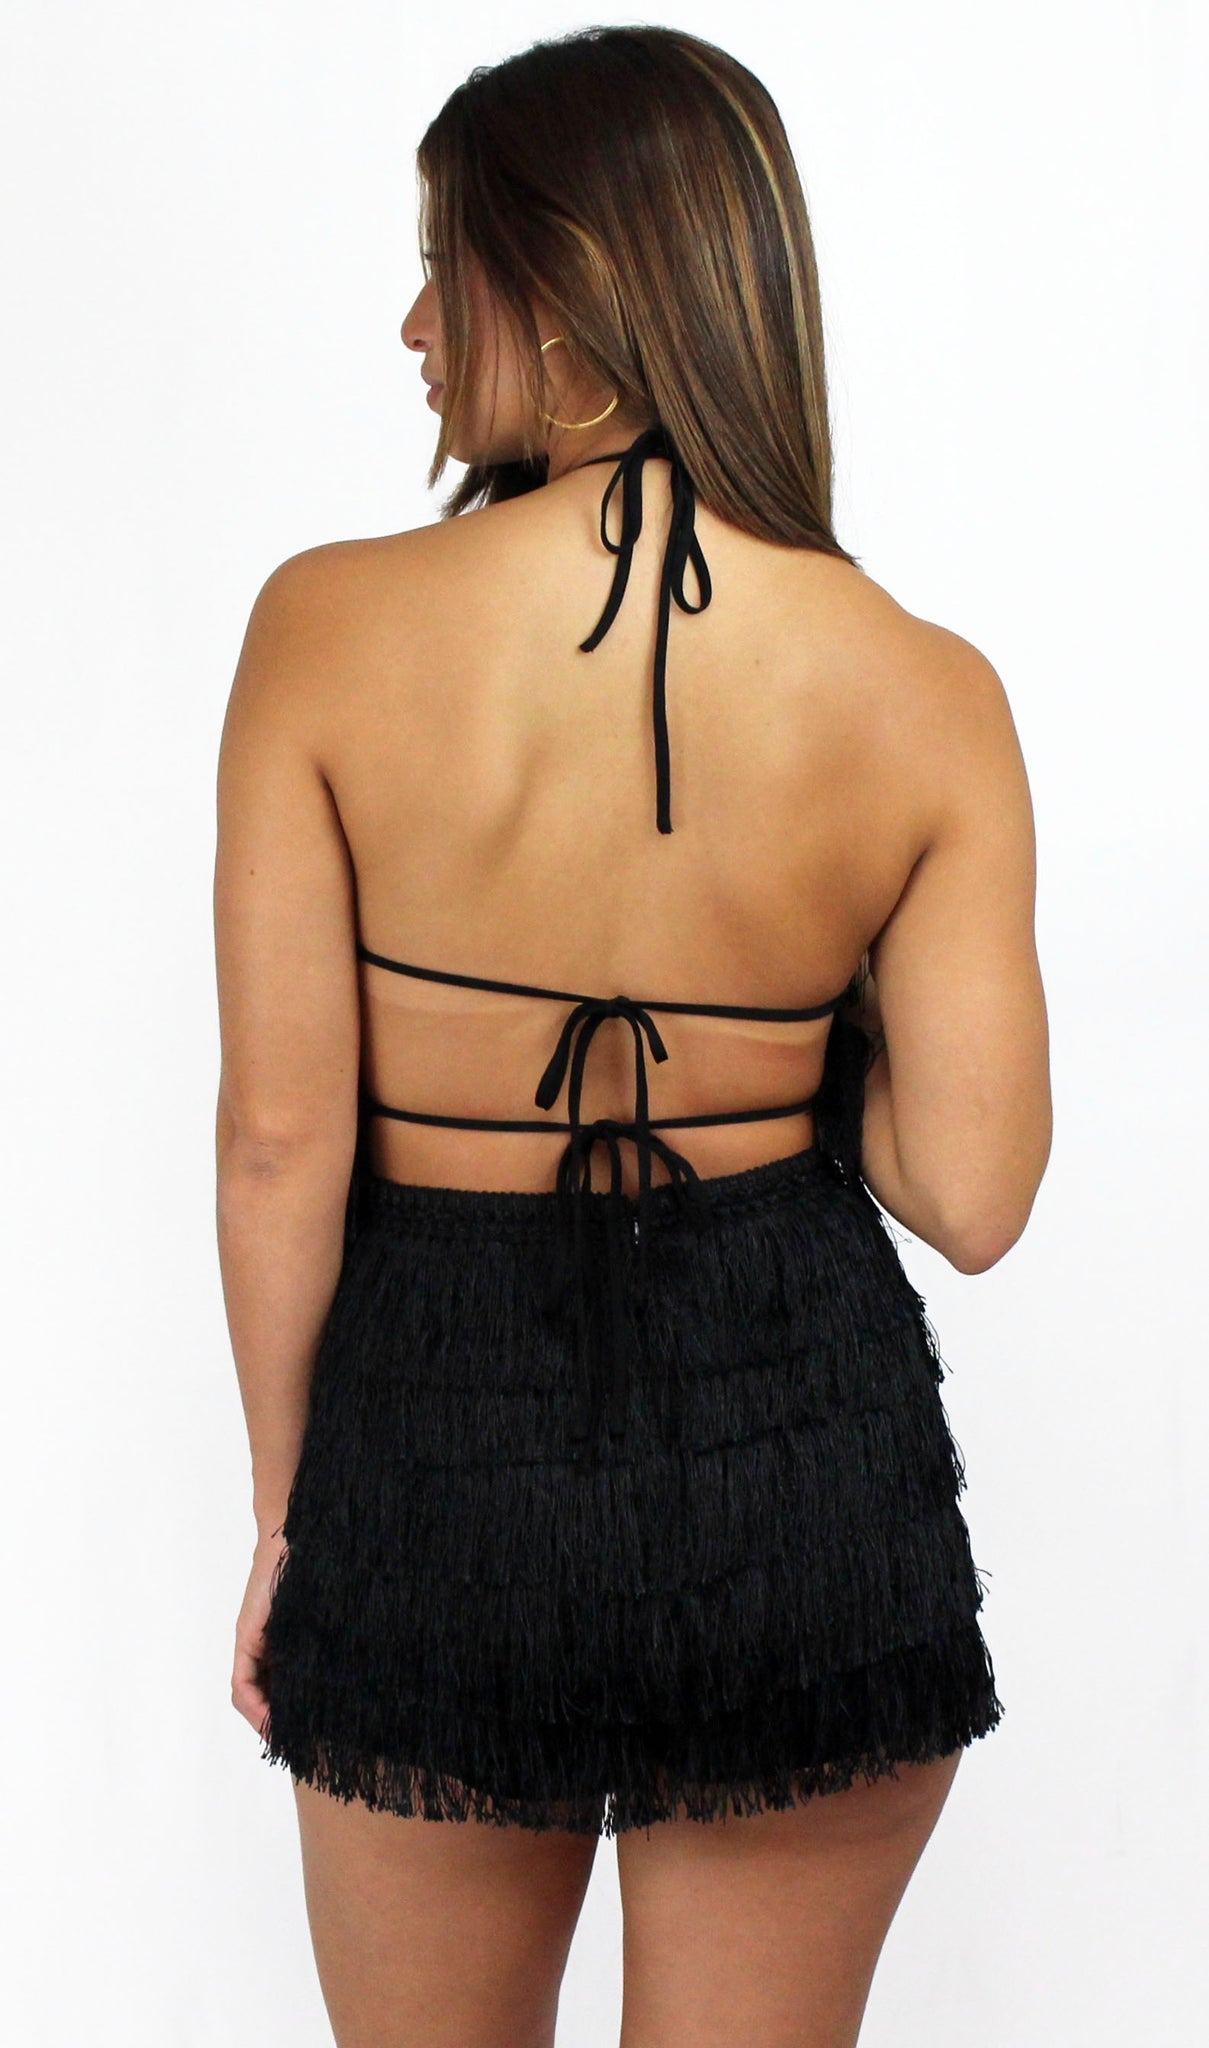 Tiki Tiki in Black Fringes Halter Romper